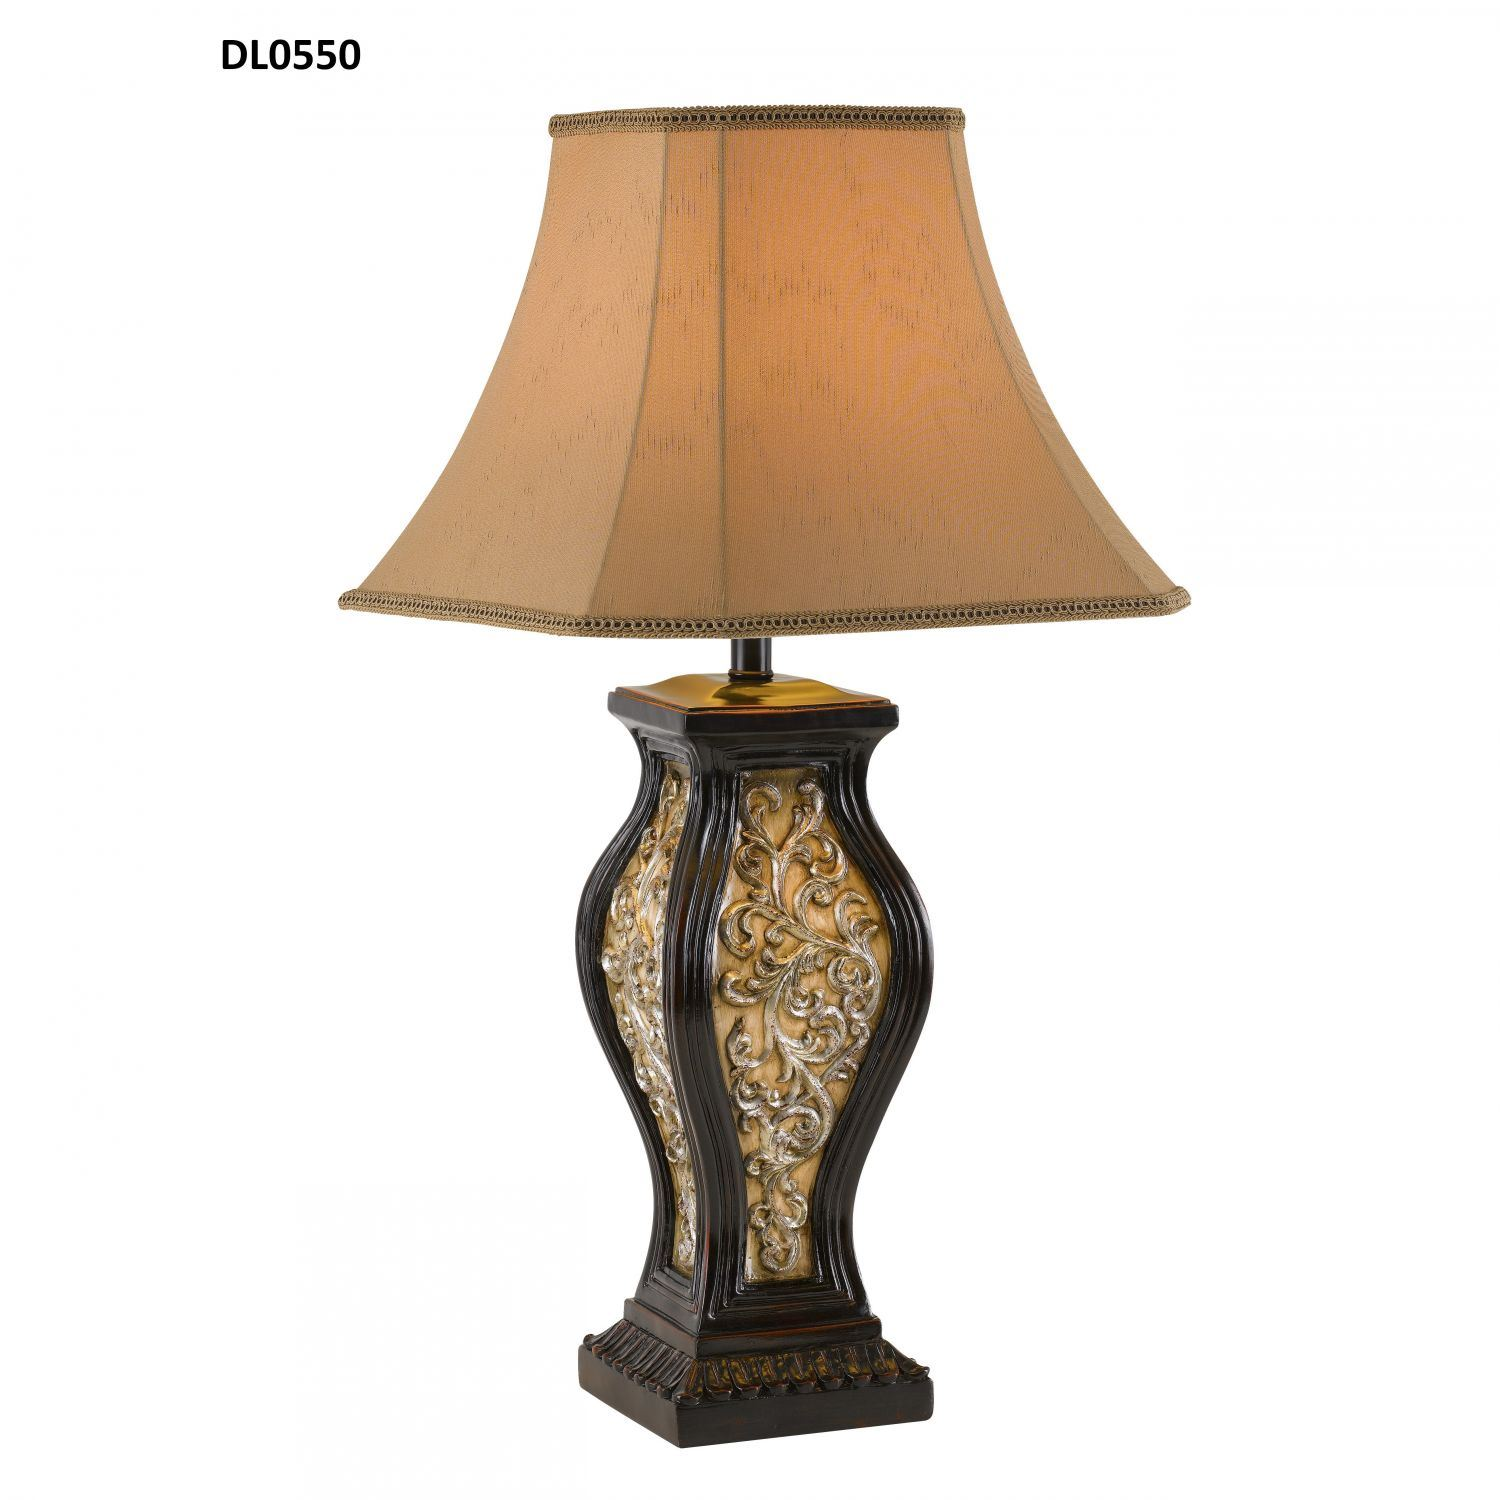 urn table lamp alabaster picture of traditional etched urn table lamp dl0550 direct lighting llc afw